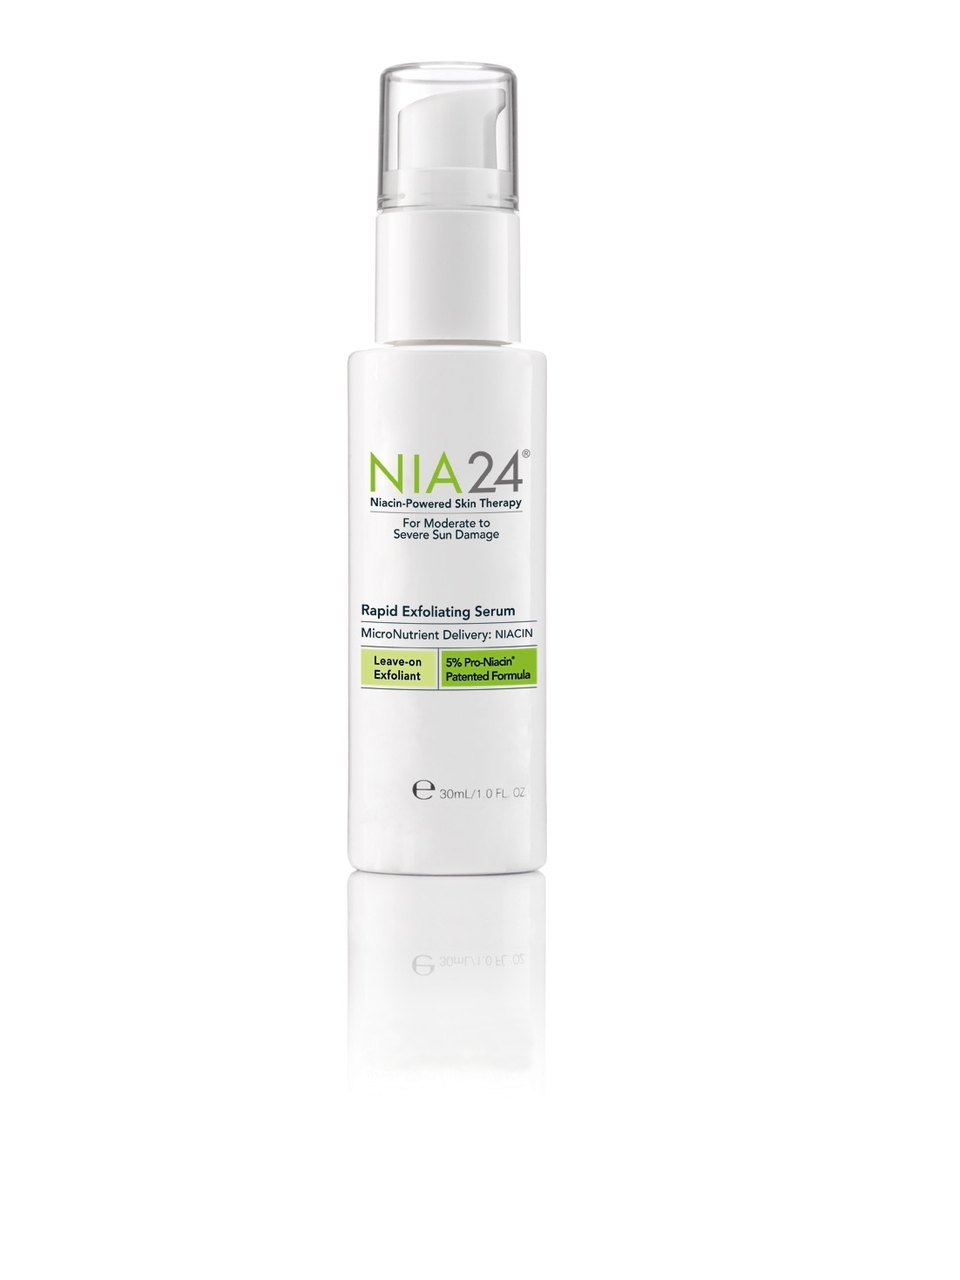 NIA24 Rapid Exfoliating Serum 1 oz